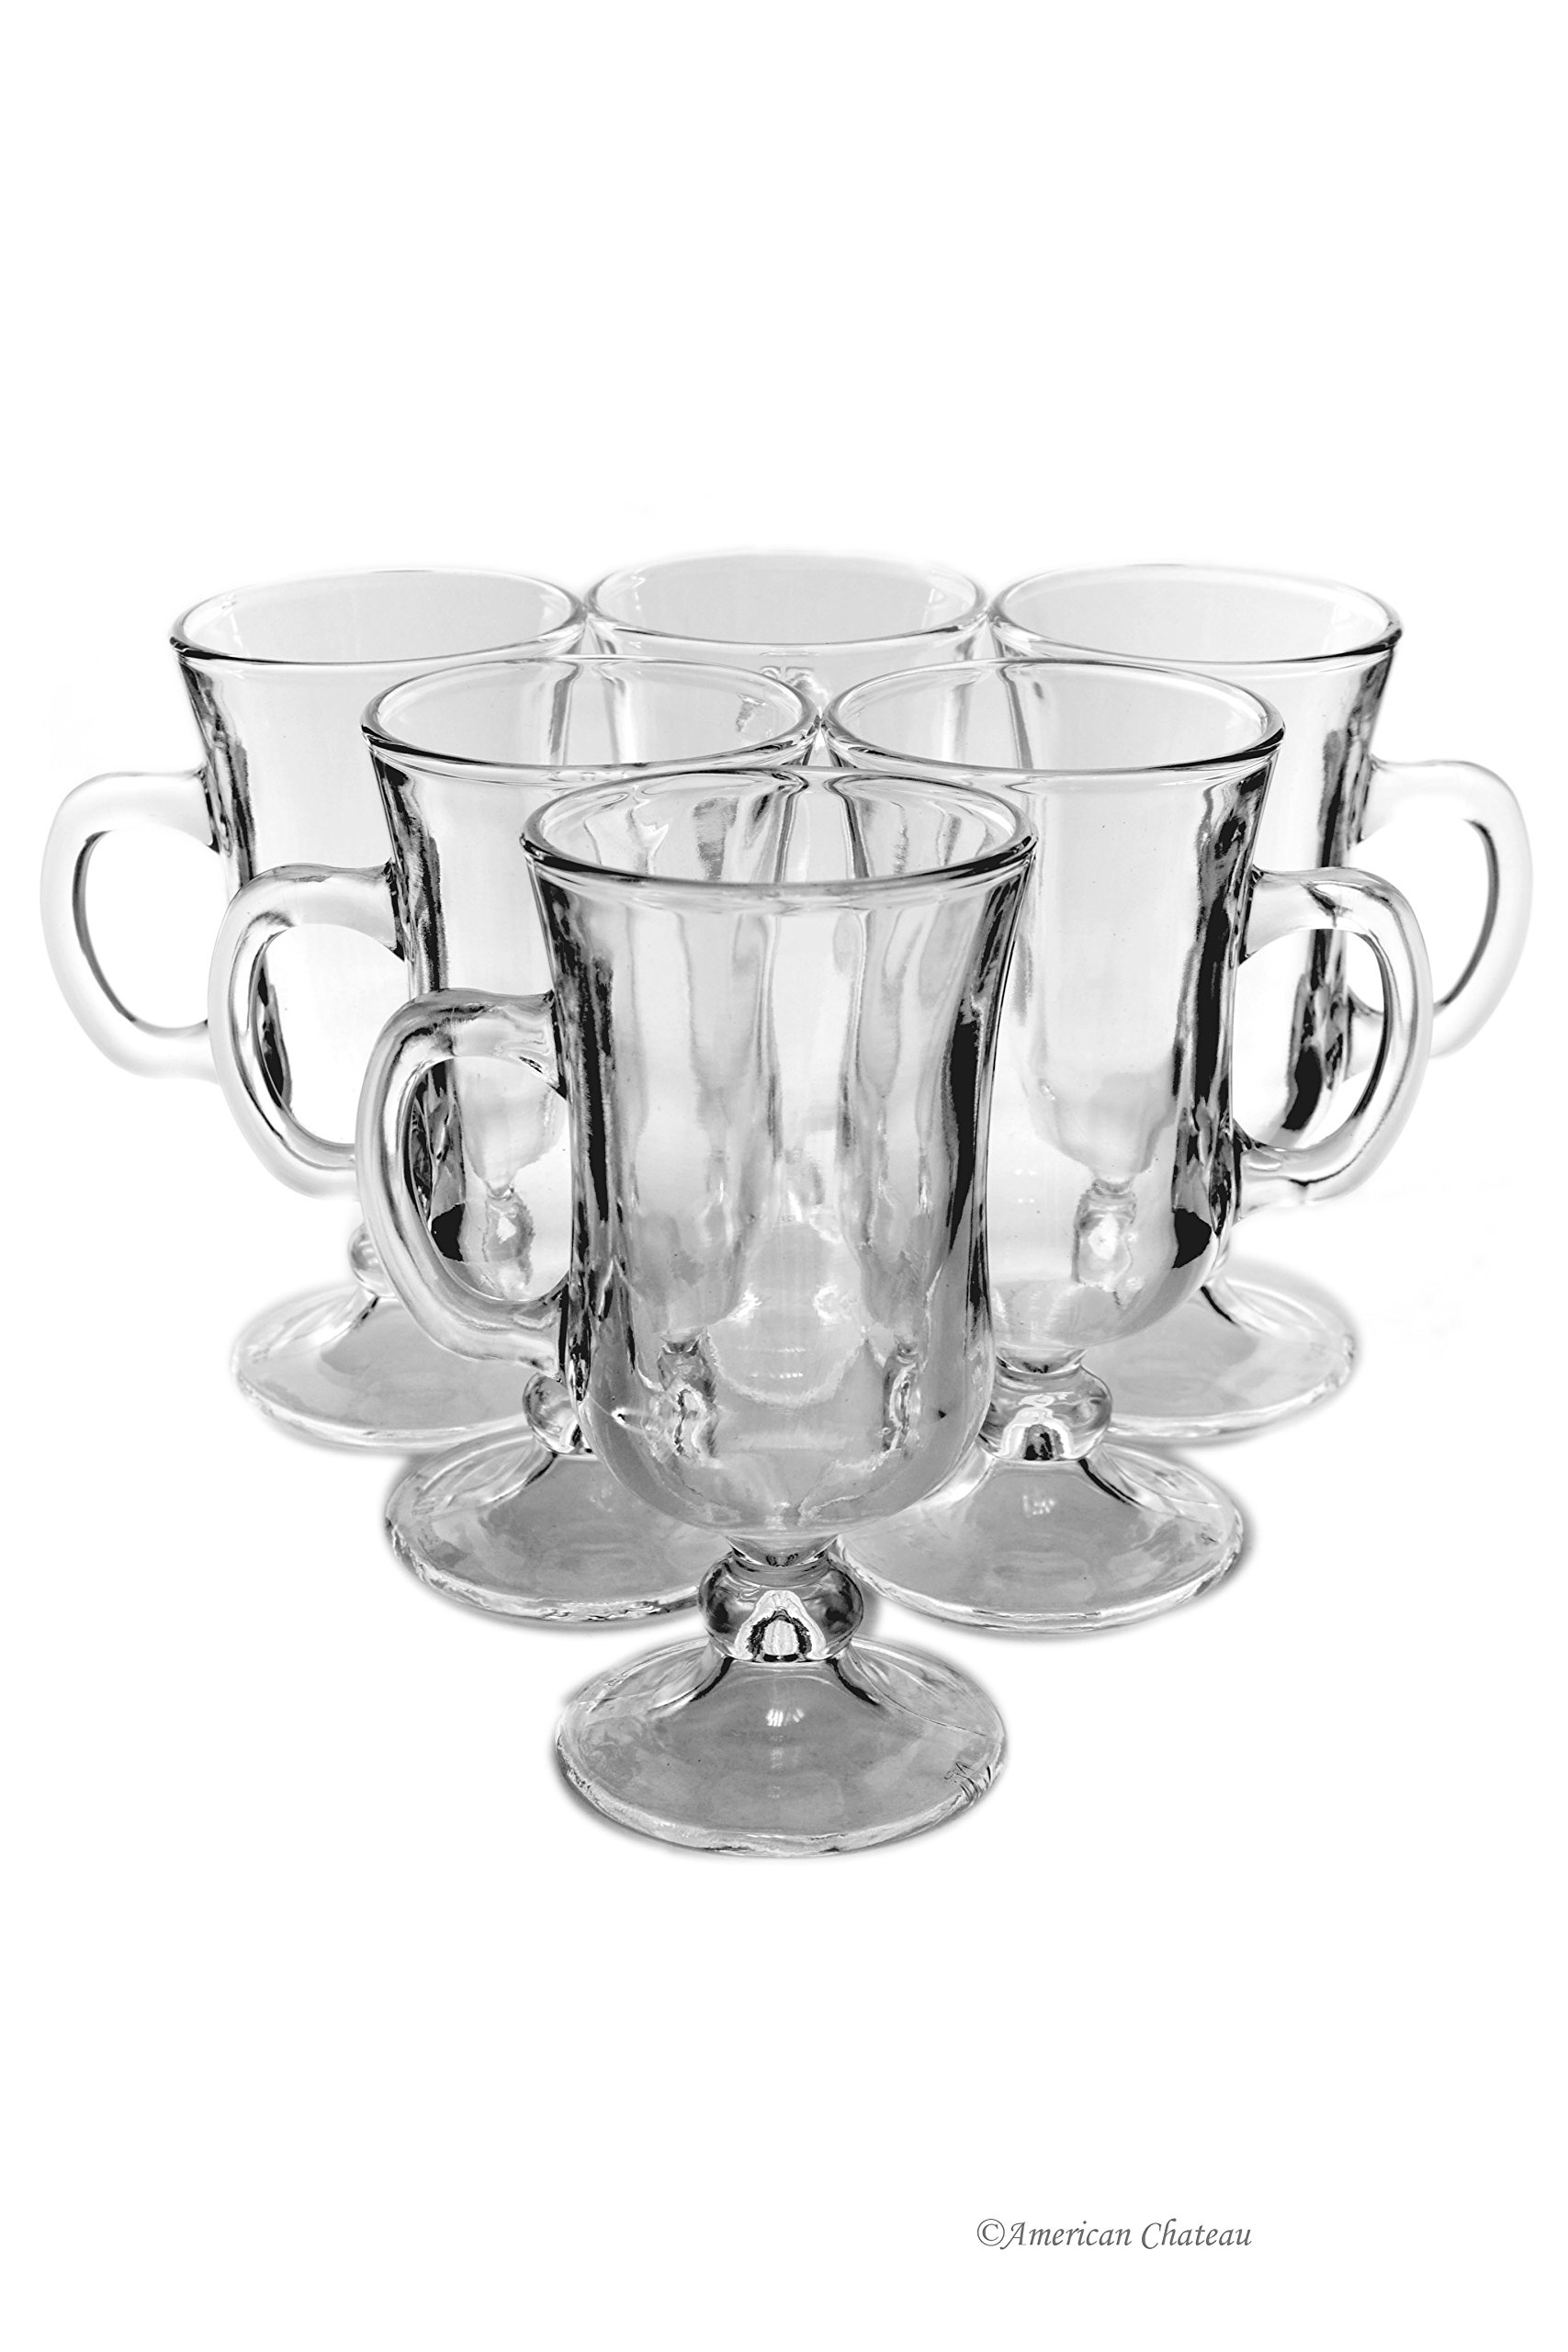 Set 6 Footed Clear Small 4.5oz Specialty Coffee Espresso Turkish Tea Glasses